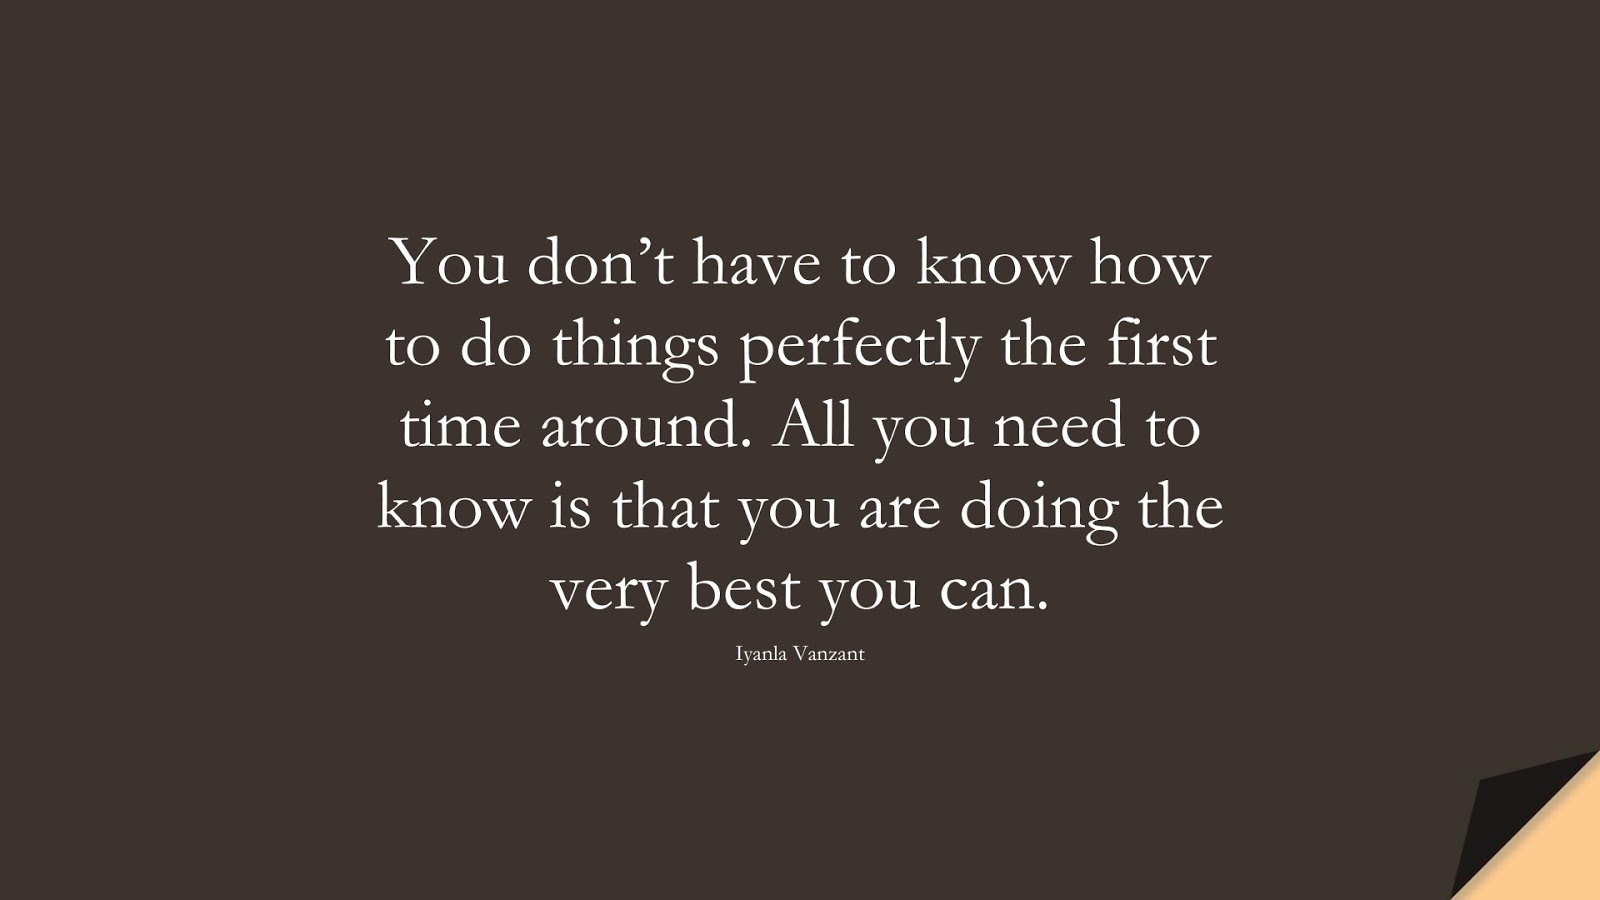 You don't have to know how to do things perfectly the first time around. All you need to know is that you are doing the very best you can. (Iyanla Vanzant);  #EncouragingQuotes